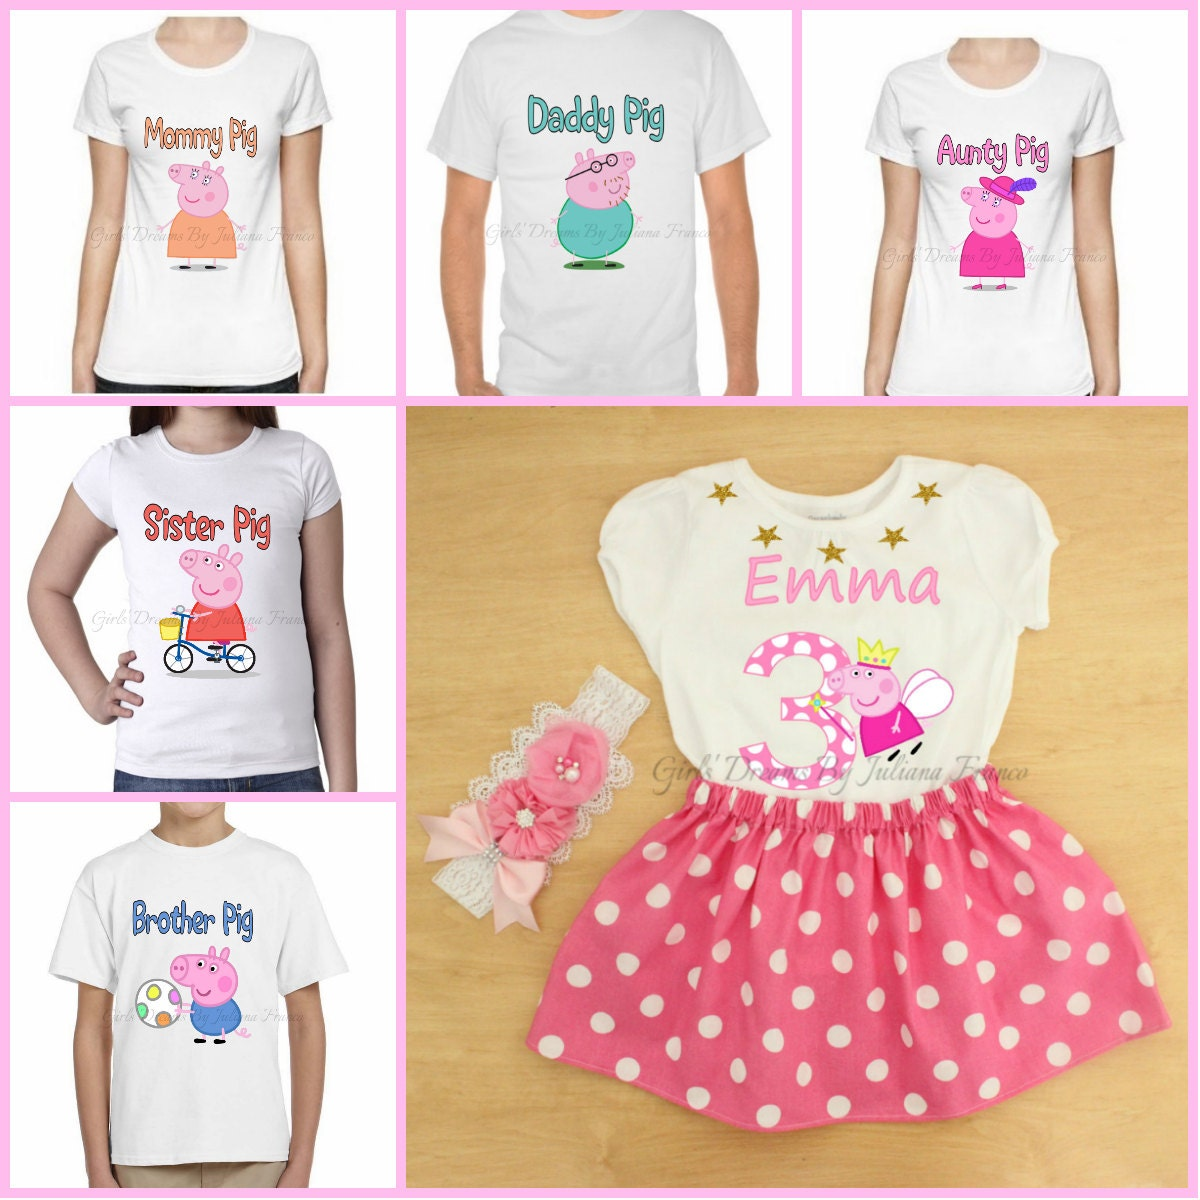 Pig clothing store